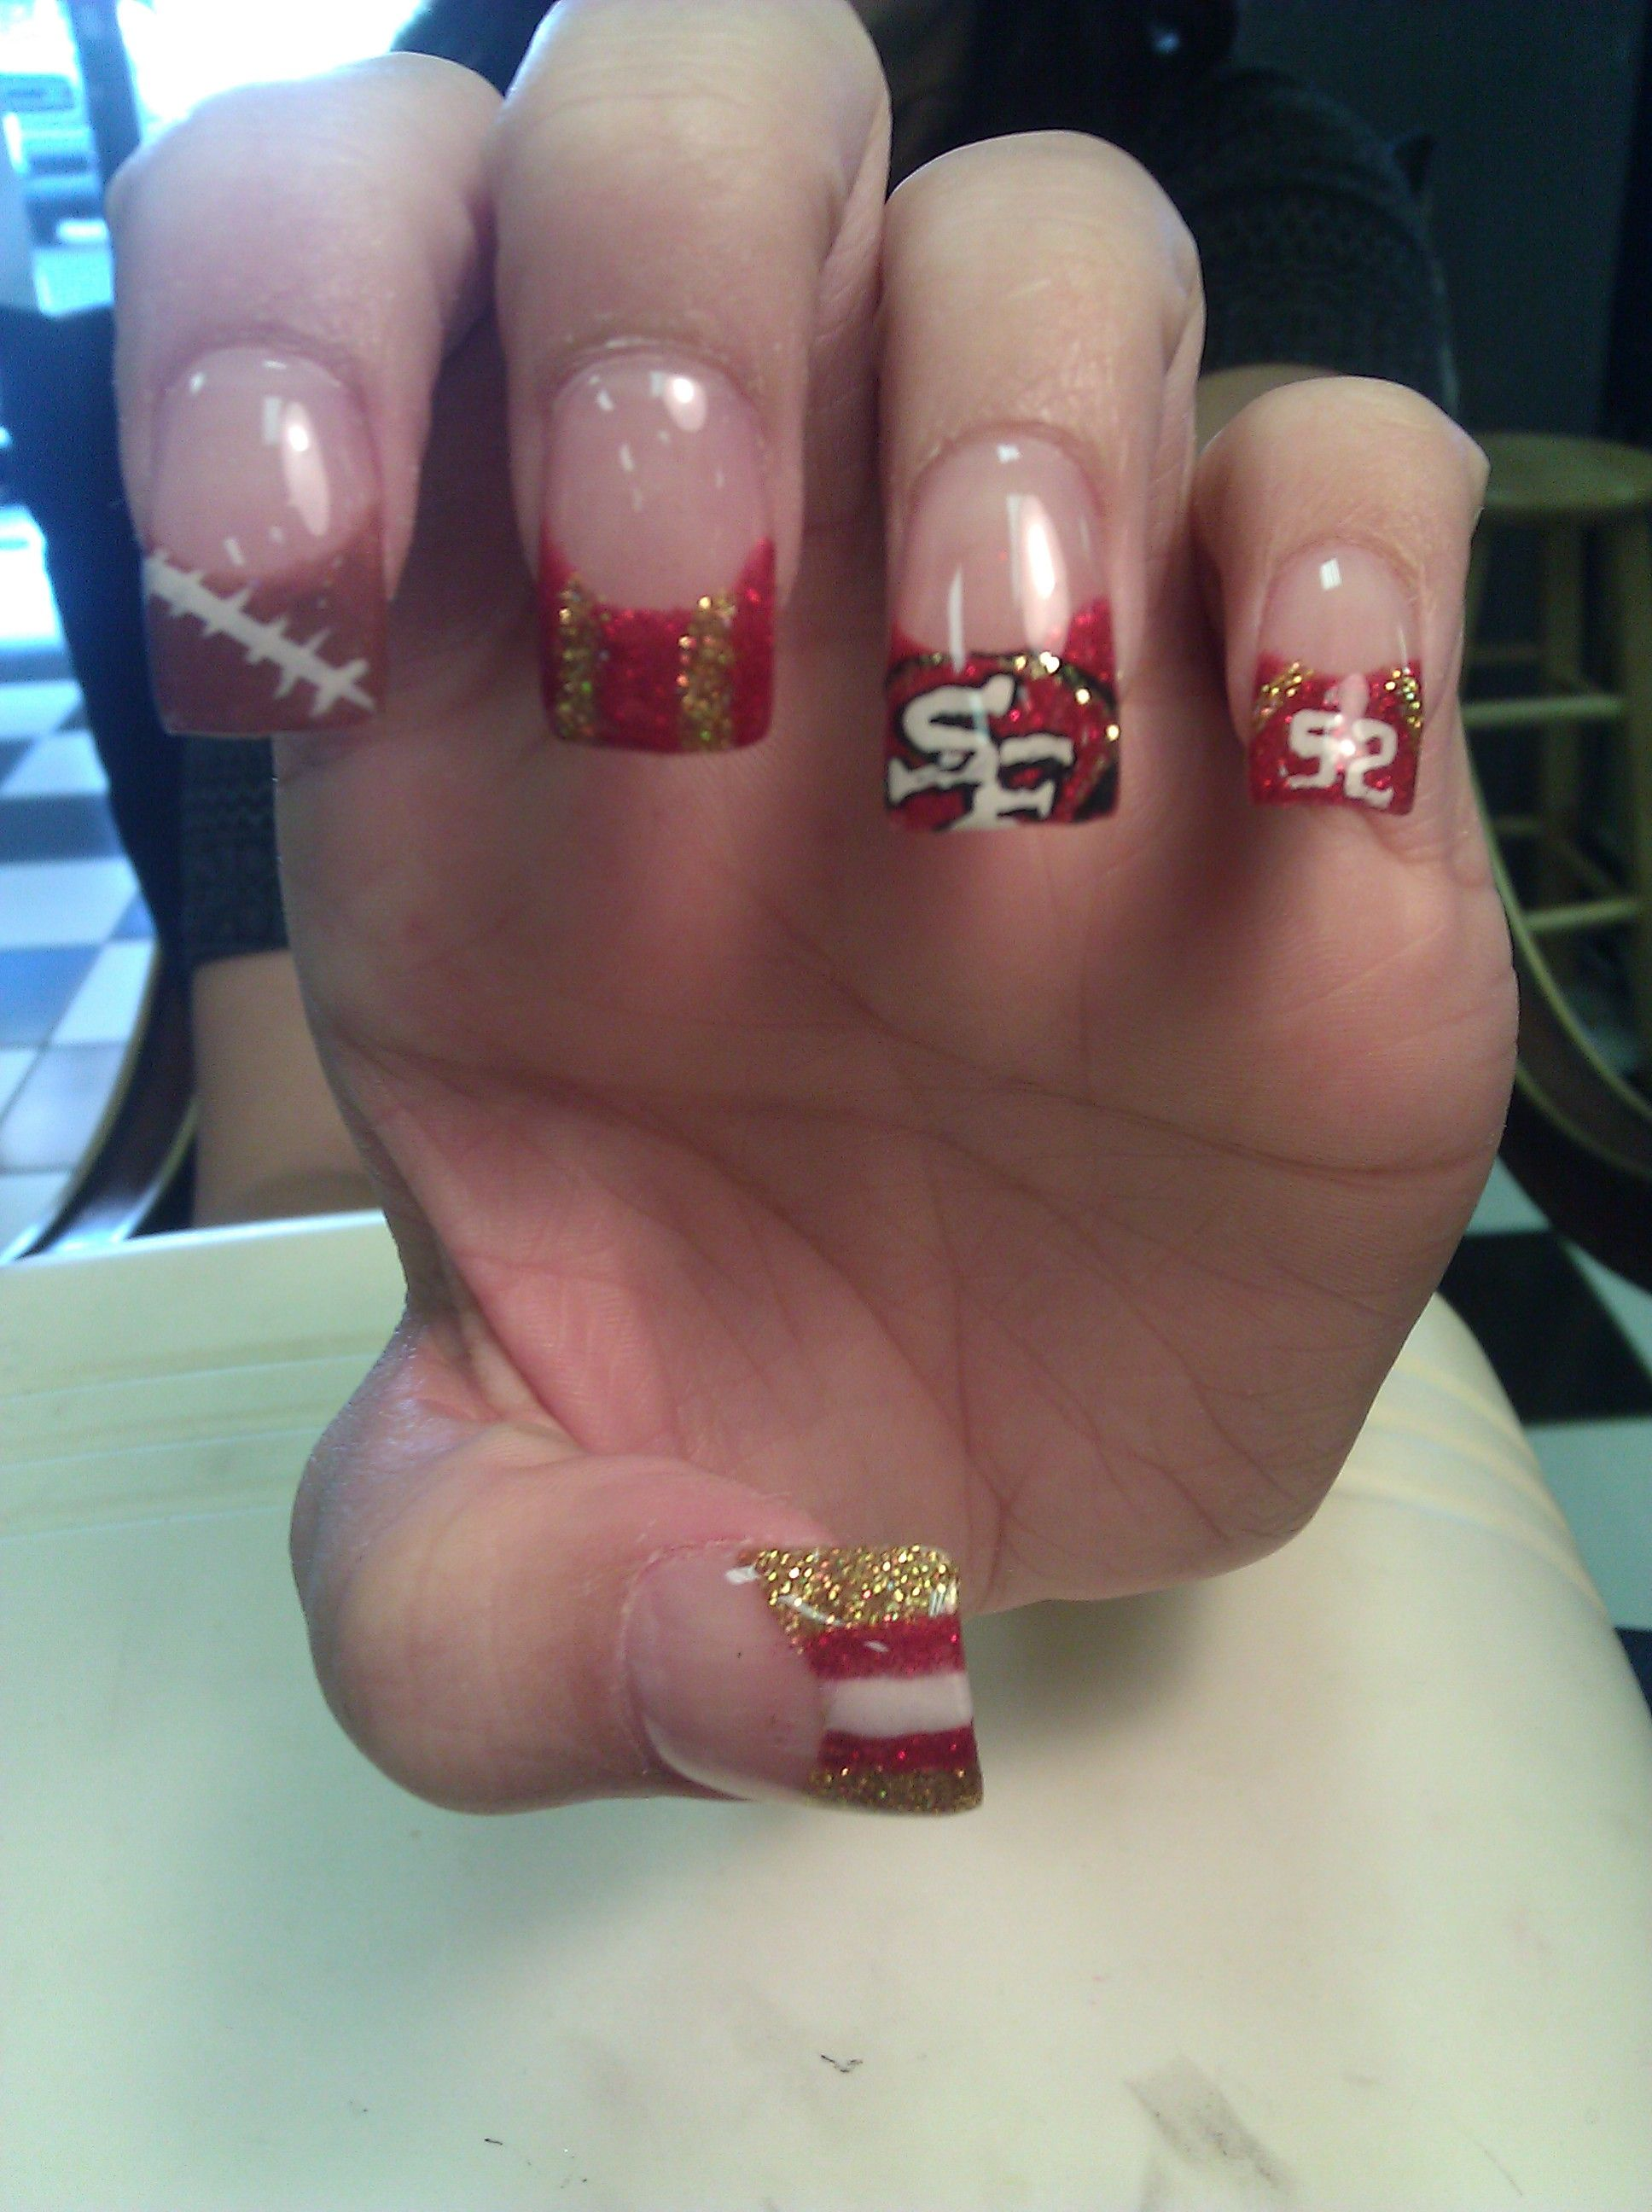 49er Nail Art Designs Should Have Done This For This Years Super